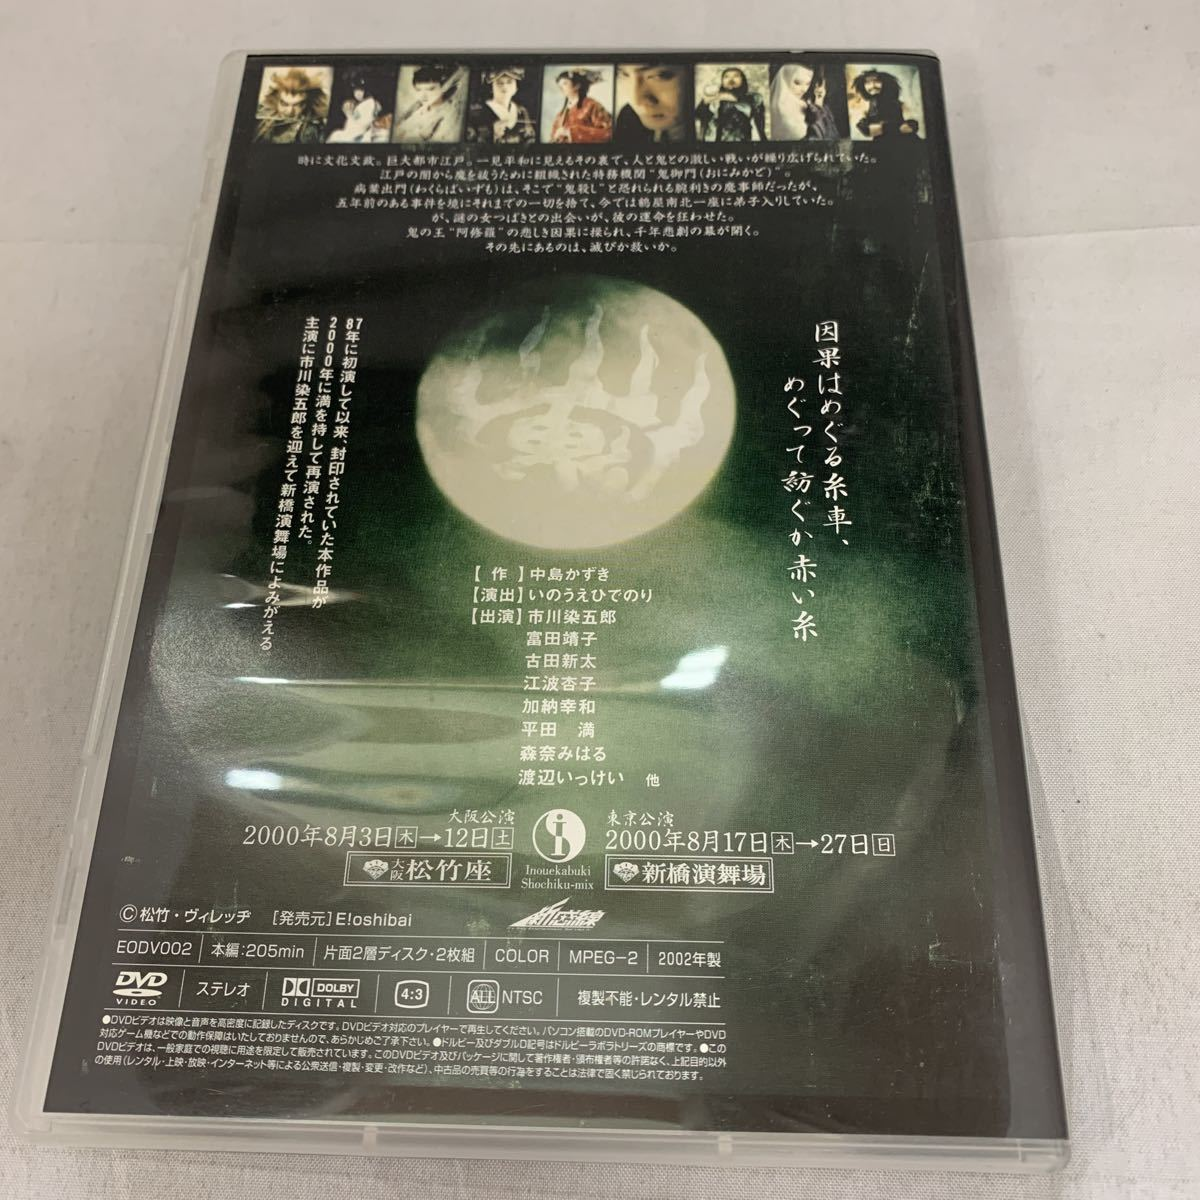 【DVD】阿修羅城の瞳 2000 BLOOD GETS IN YOUR EYES市川染五郎 0714ts1_画像5